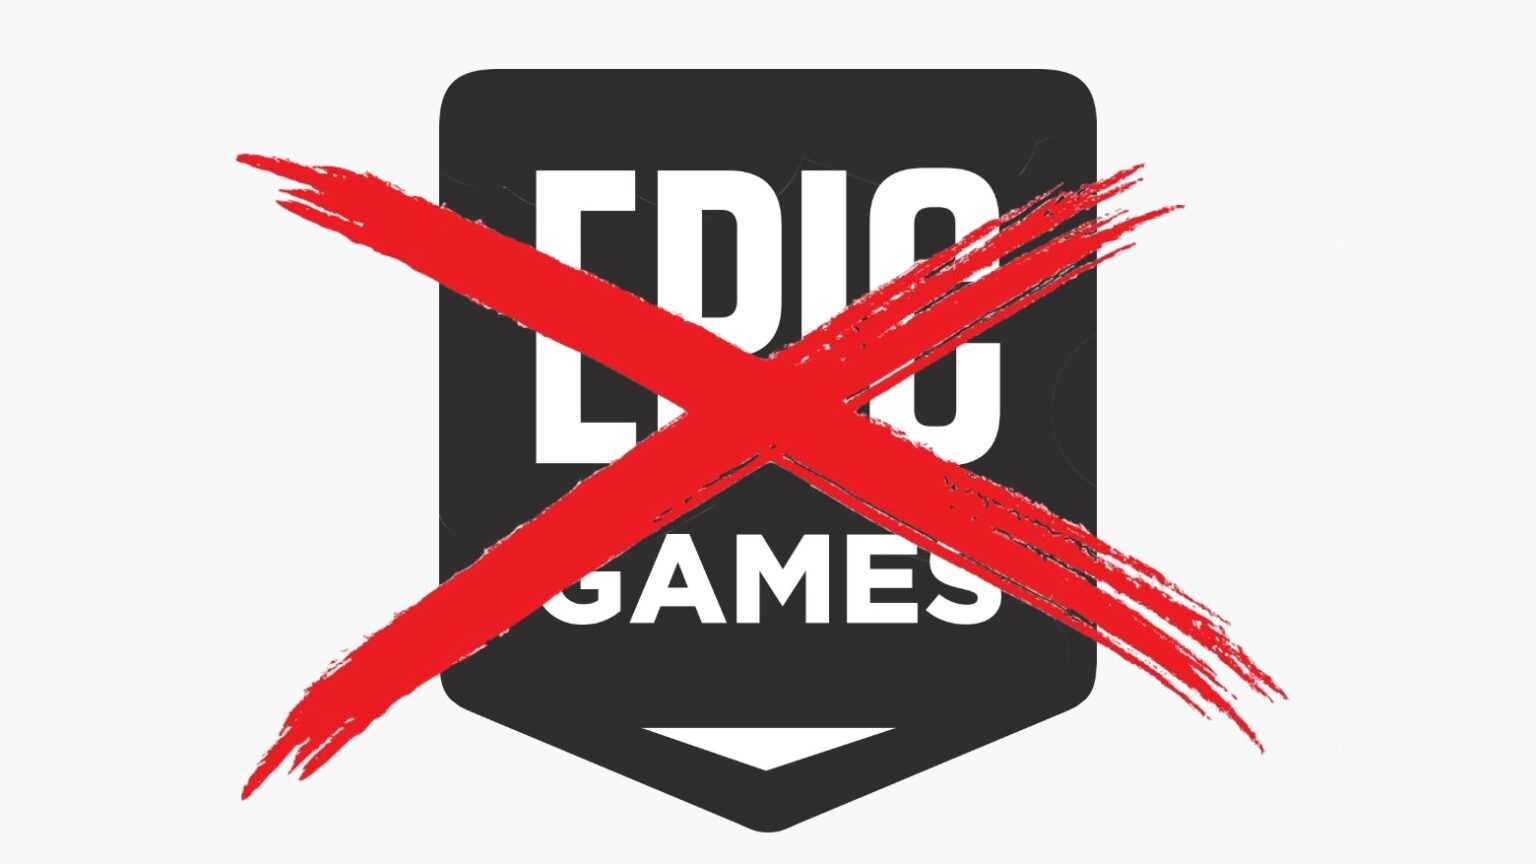 Apple cancelled Epic Games account on the App Store.